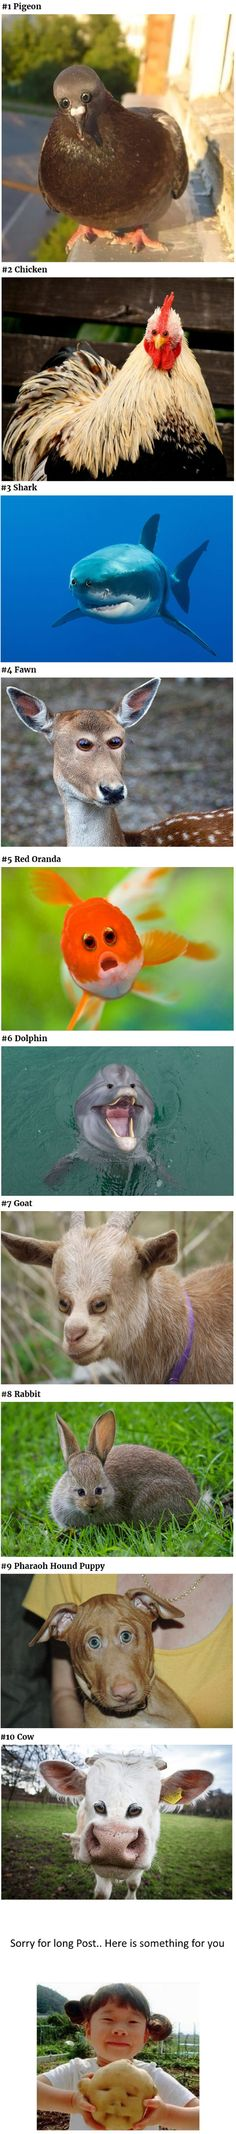 What Different Animals Would Look Like If Their Eyes Were At The Front. - 9GAG